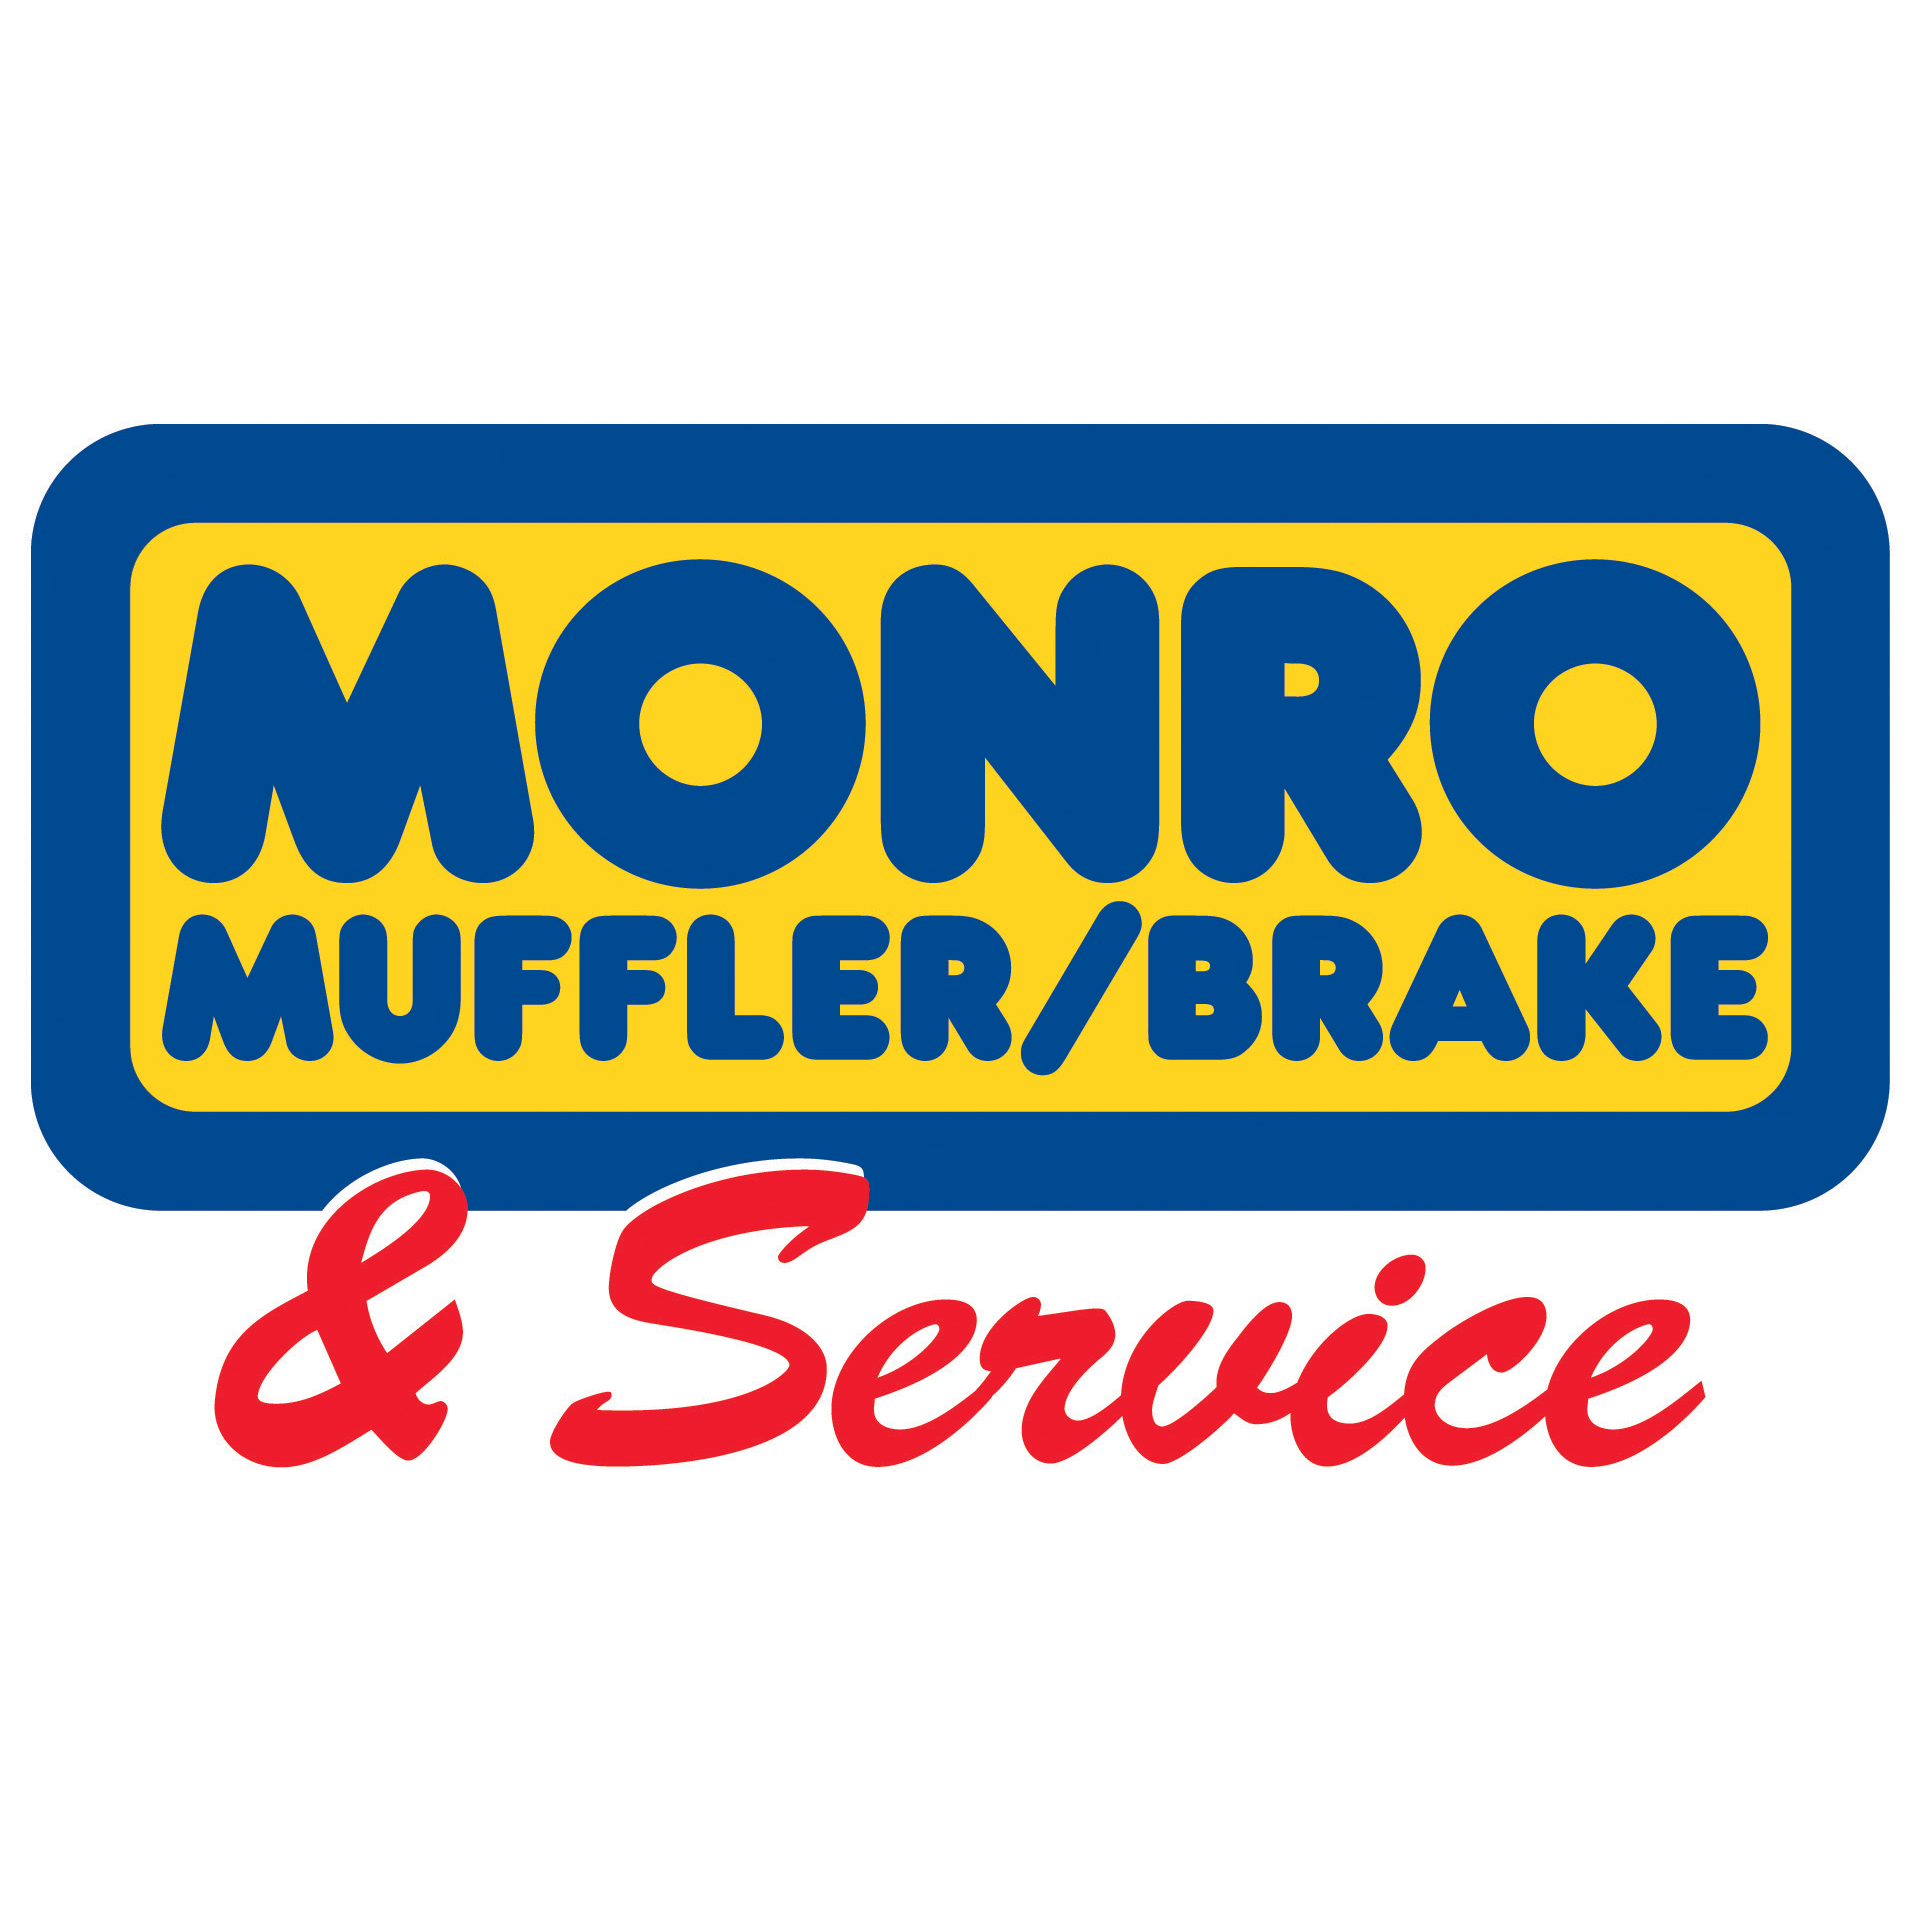 Monro Muffler Brake & Service - Sewickley, PA - General Auto Repair & Service